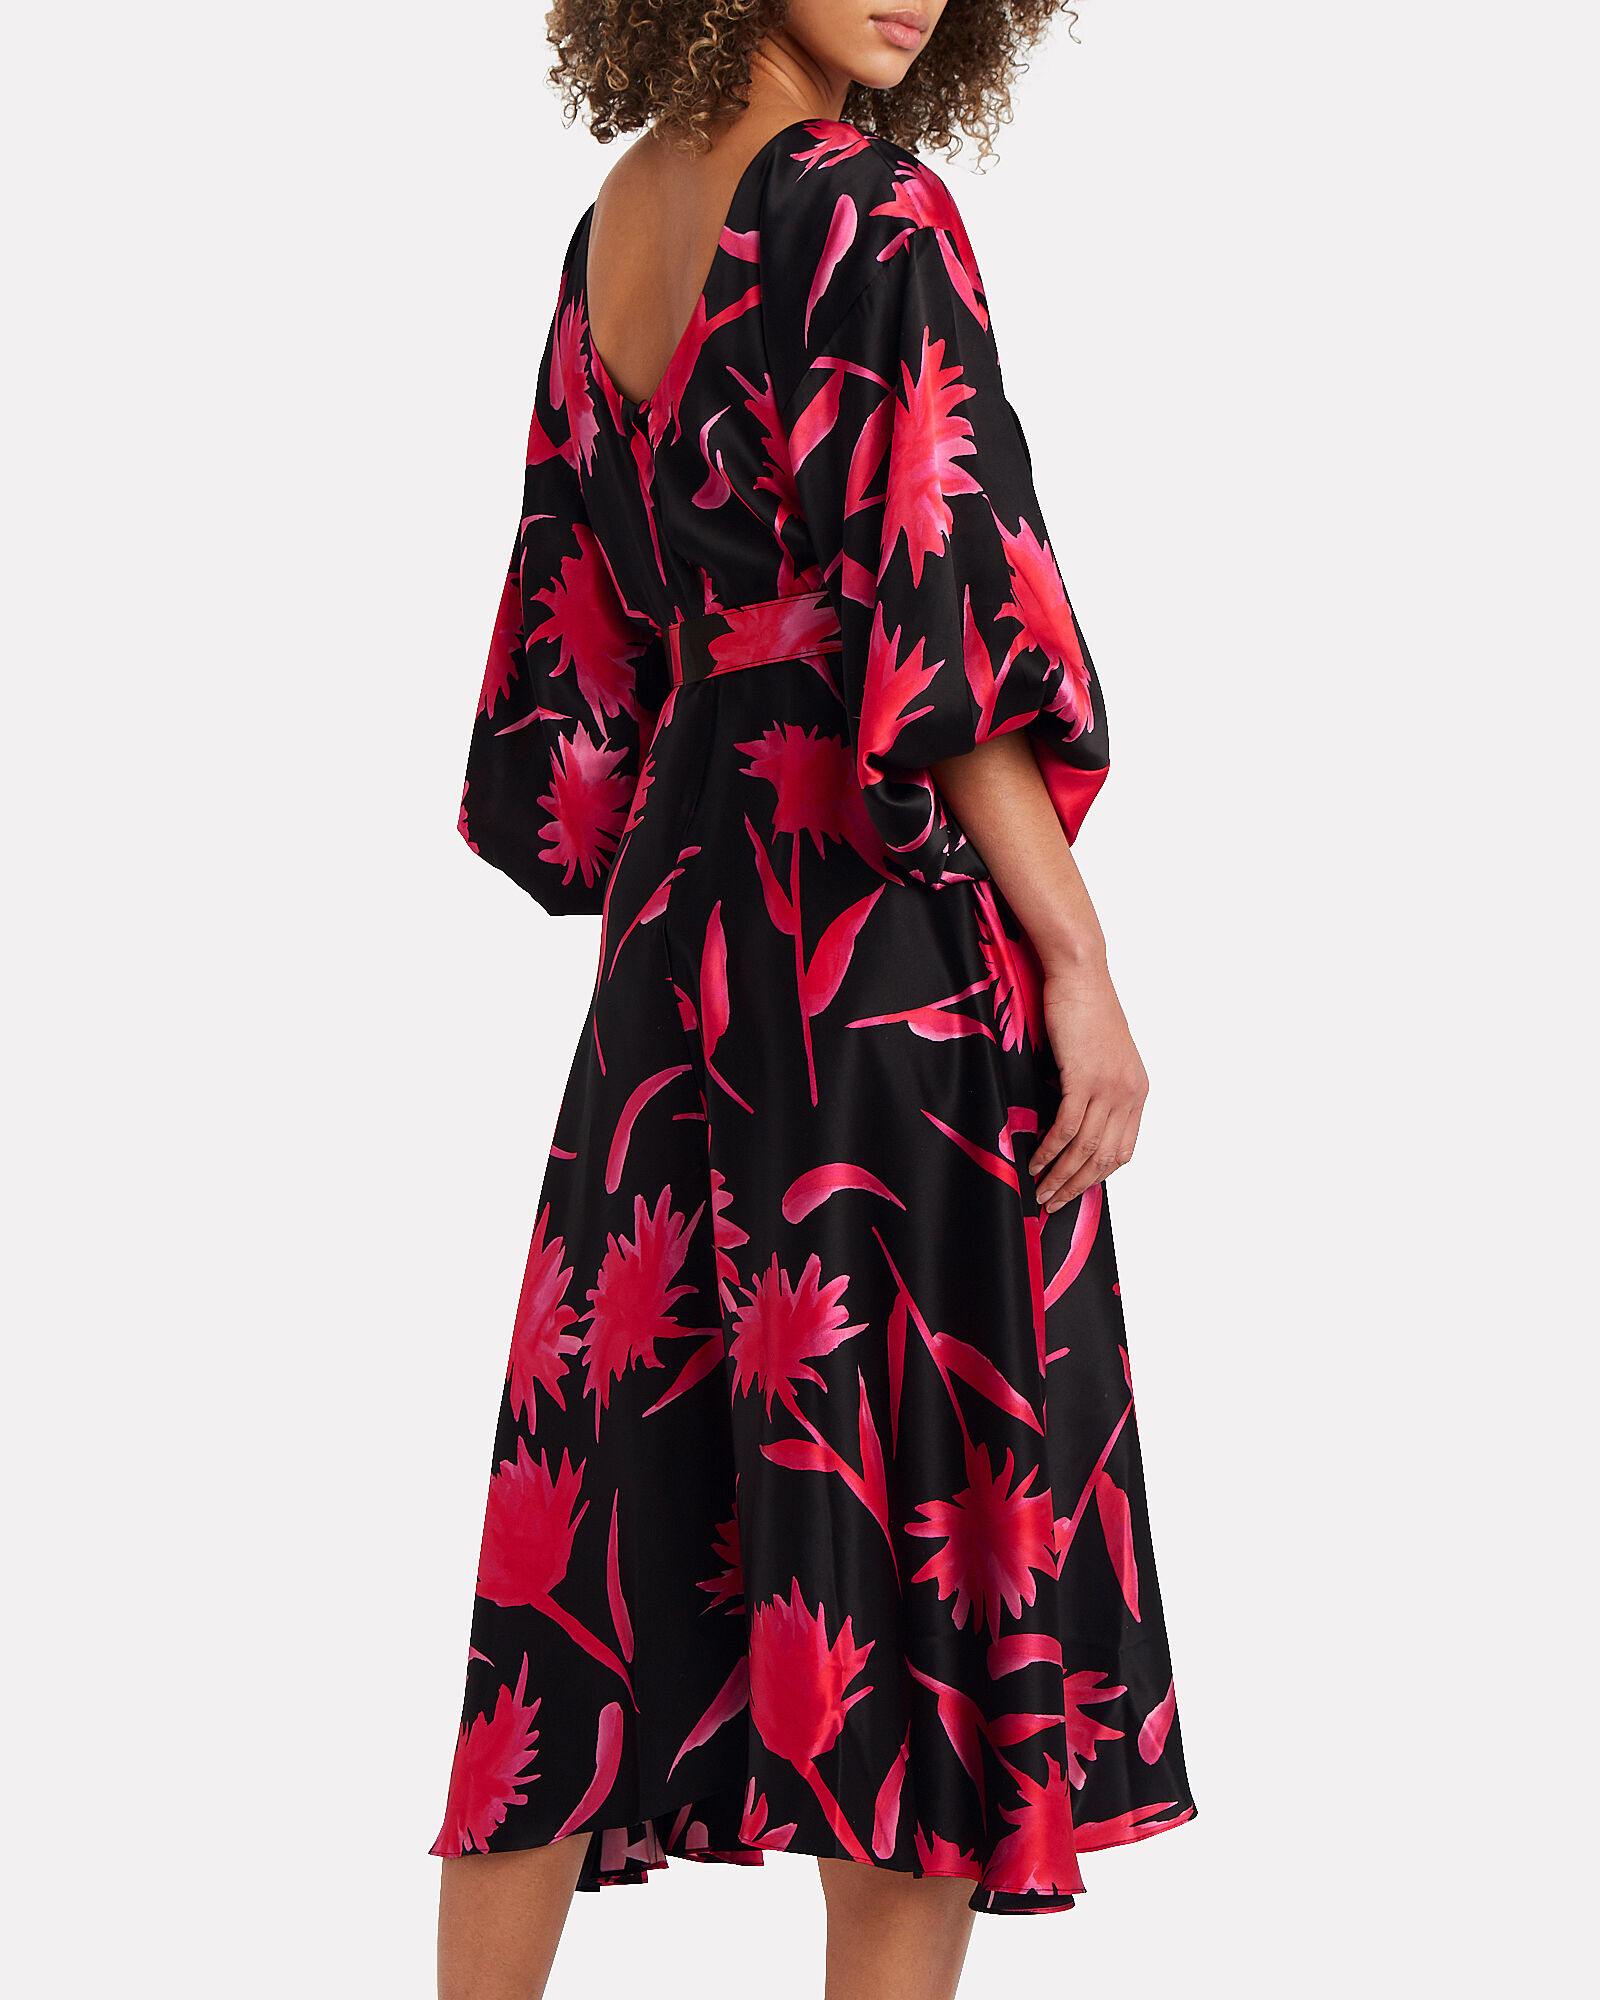 Kim Floral Silk Dress, BLACK FLORAL, hi-res